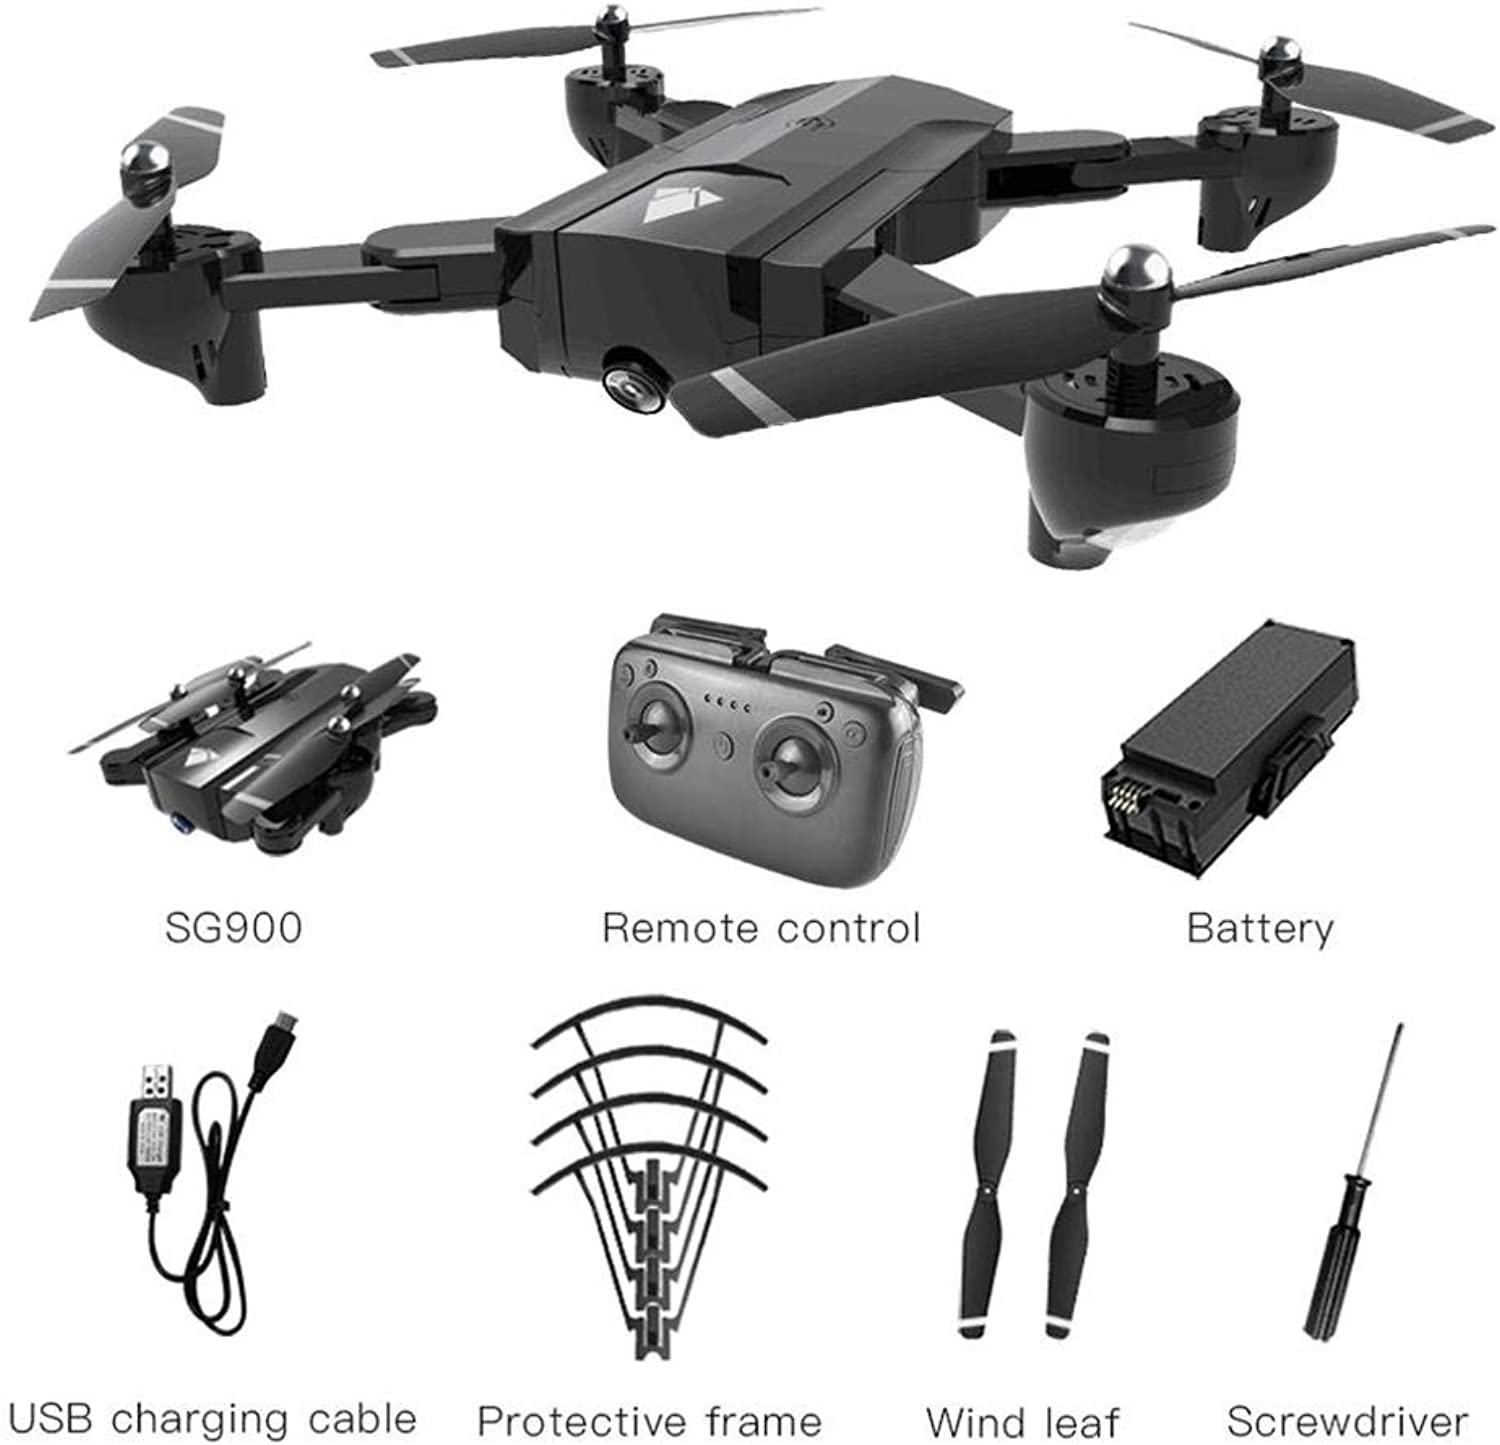 Generic SG900 Foldable Quadcopter 720P Drone Quadcopter WiFi FPV Drones GPS Optical Flow Positioning RC Drone Helicopter with Camera hi 3.7V 1100mAh